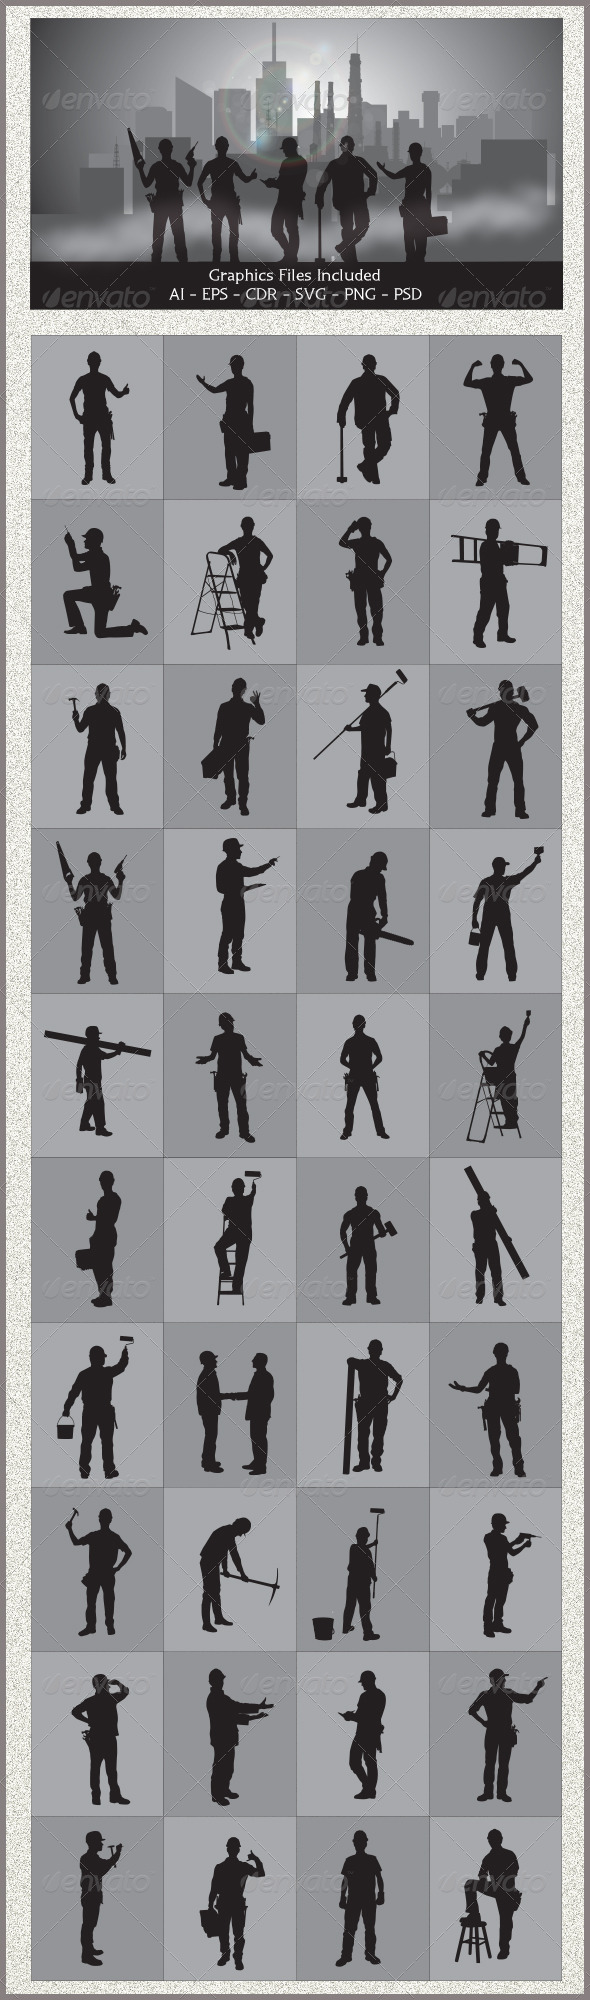 GraphicRiver Handyman Silhouettes 5439352